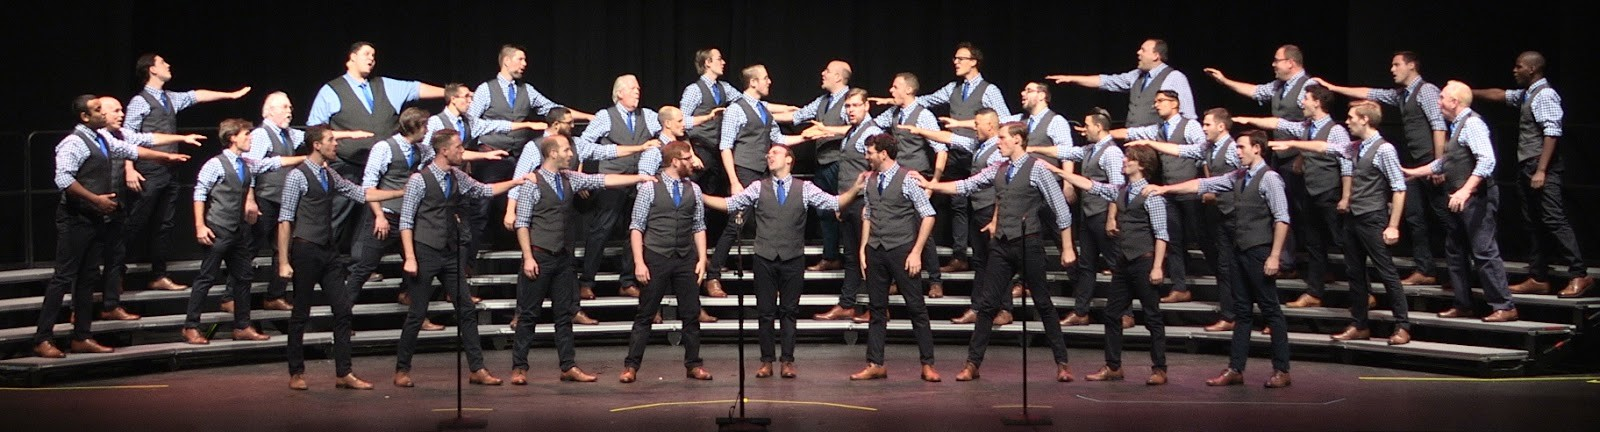 """Voices debuting """"King of New York"""" at Mid-Atlantic District Competition in Reading, PA"""